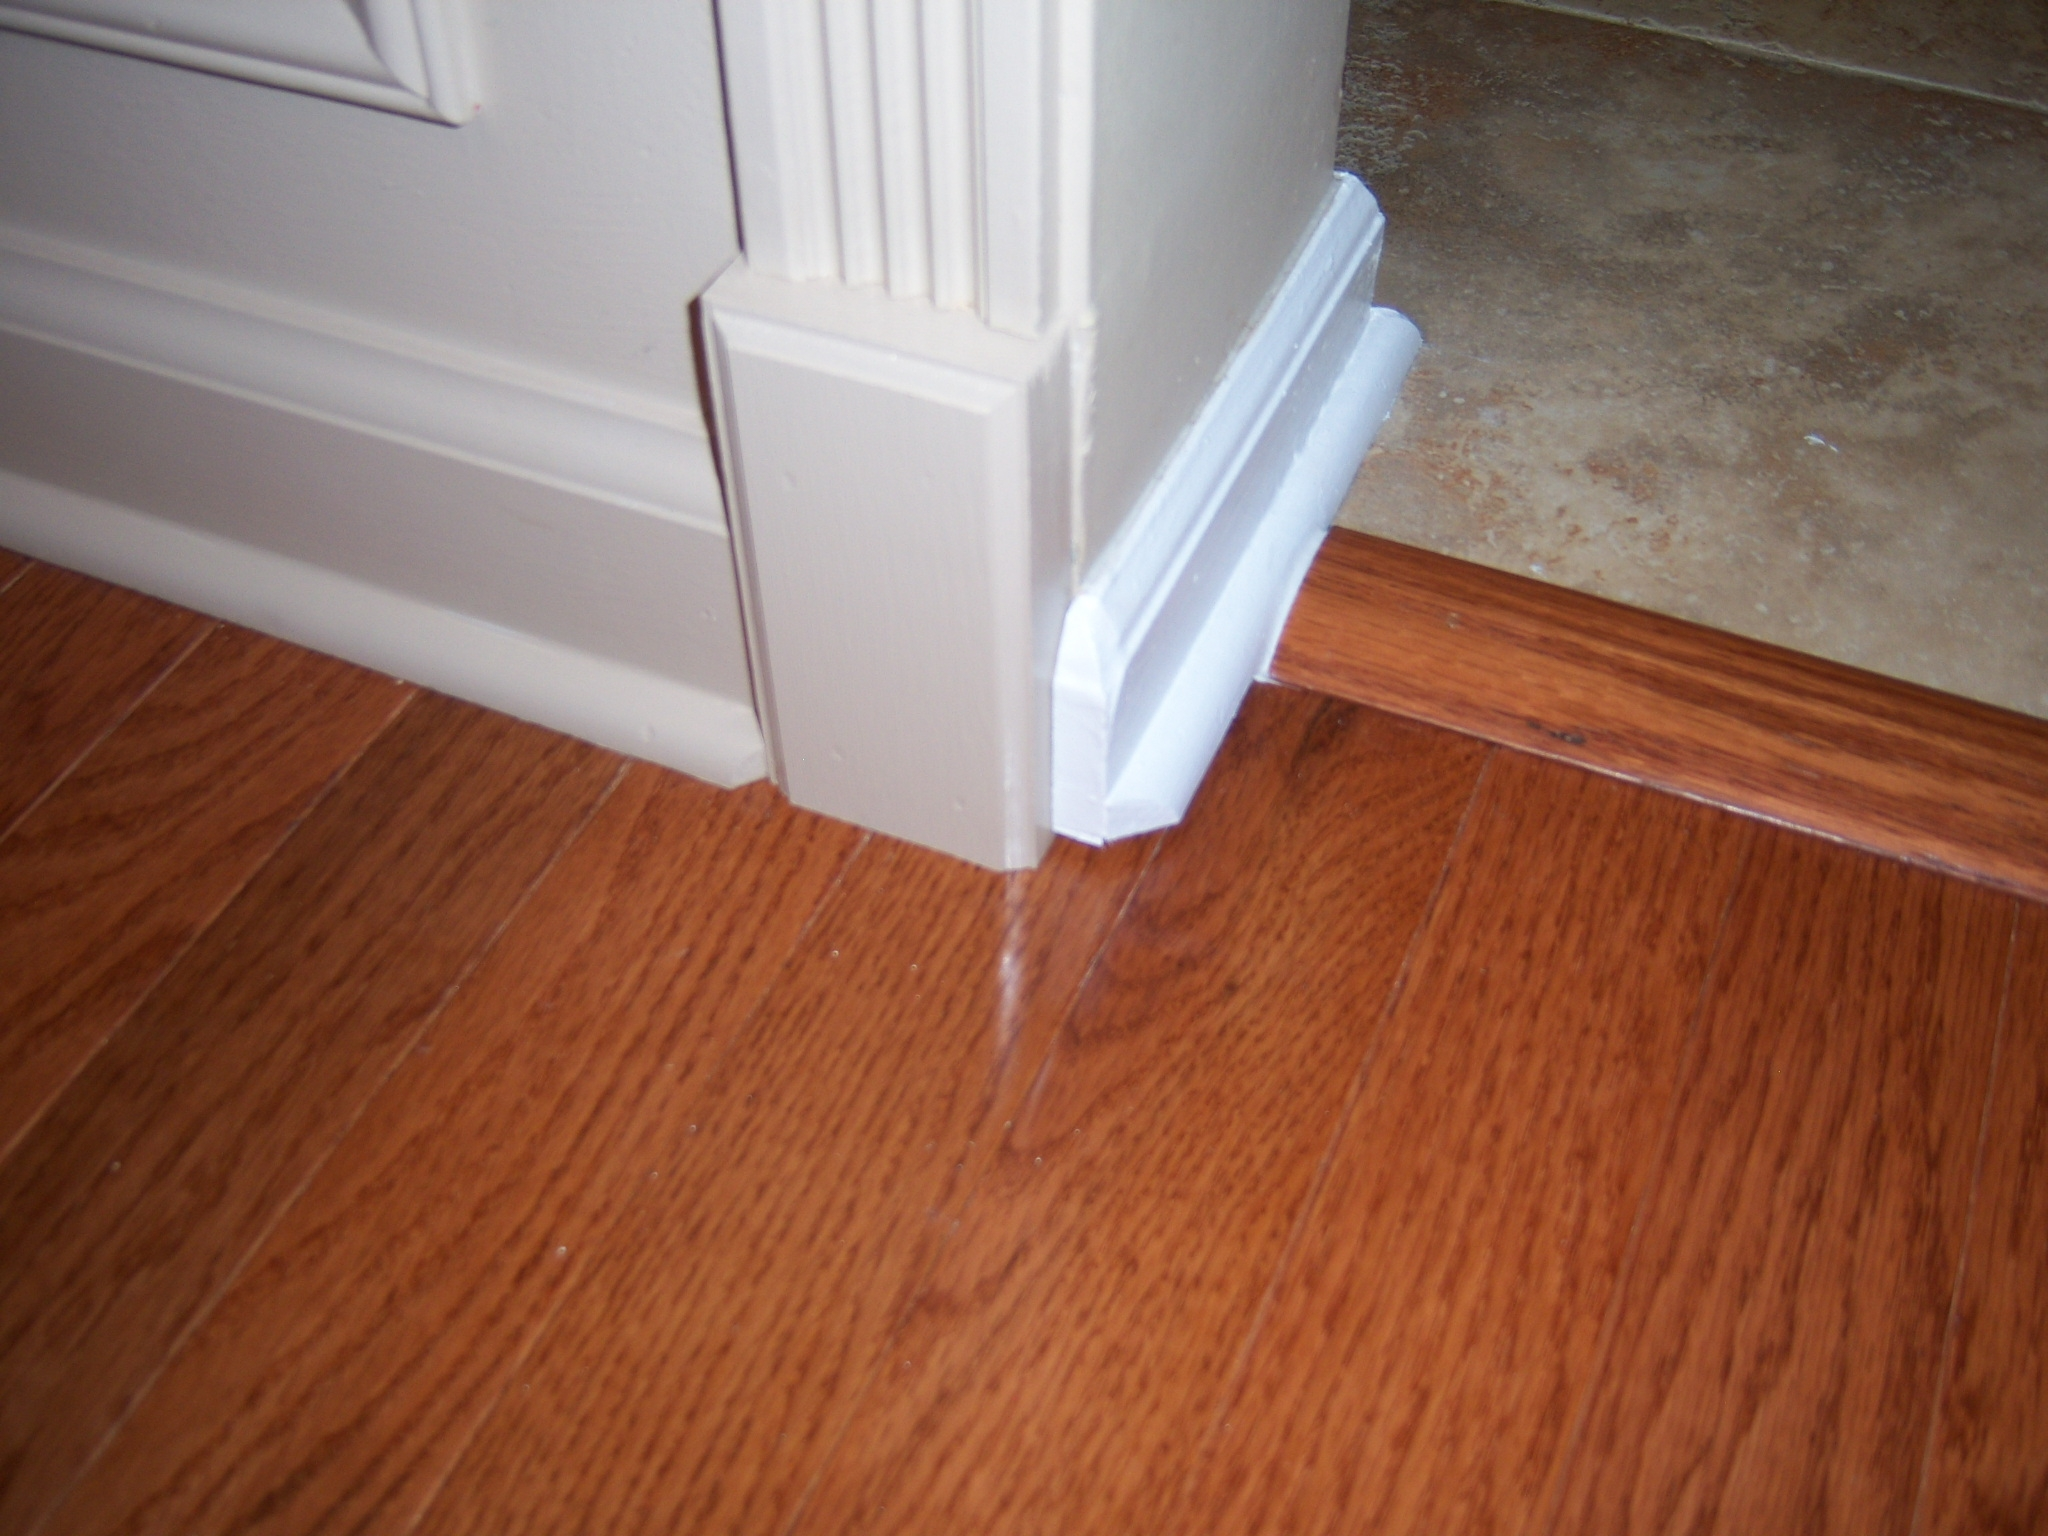 Wood Floor Trim Molding